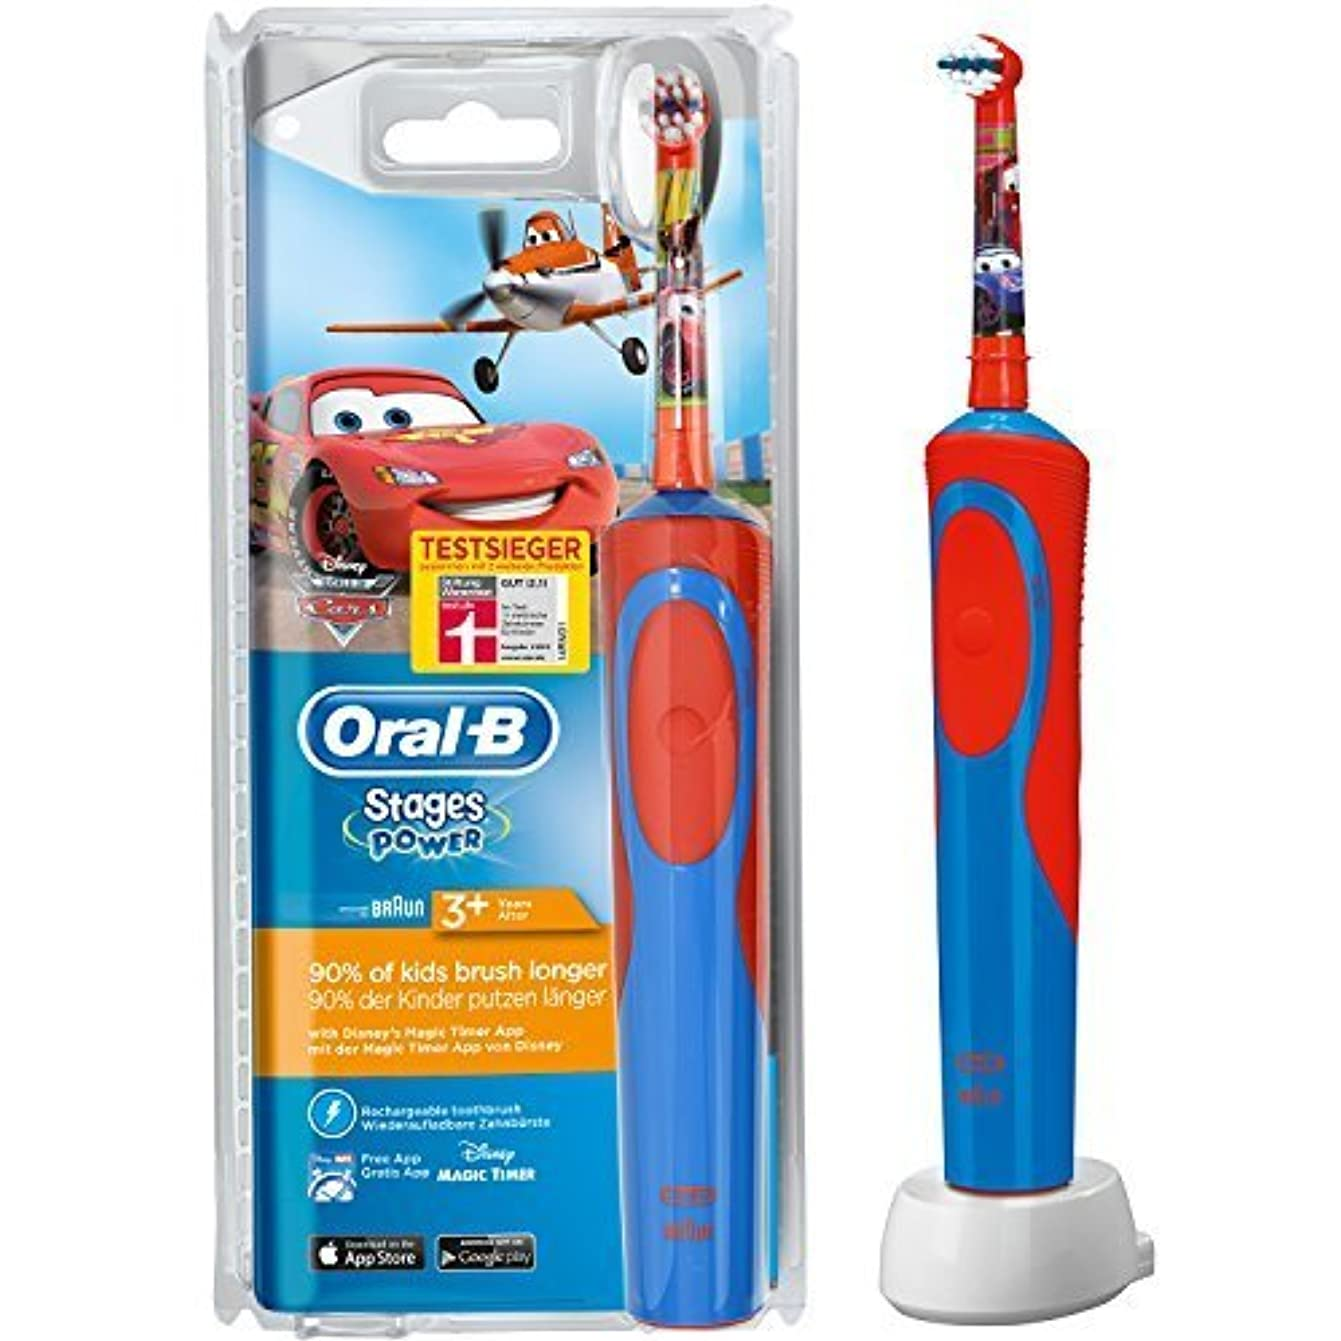 歯車登録するにはまってOral-B Stages Power Cars Children's Electric Toothbrush with Timer by Oral-B [並行輸入品]